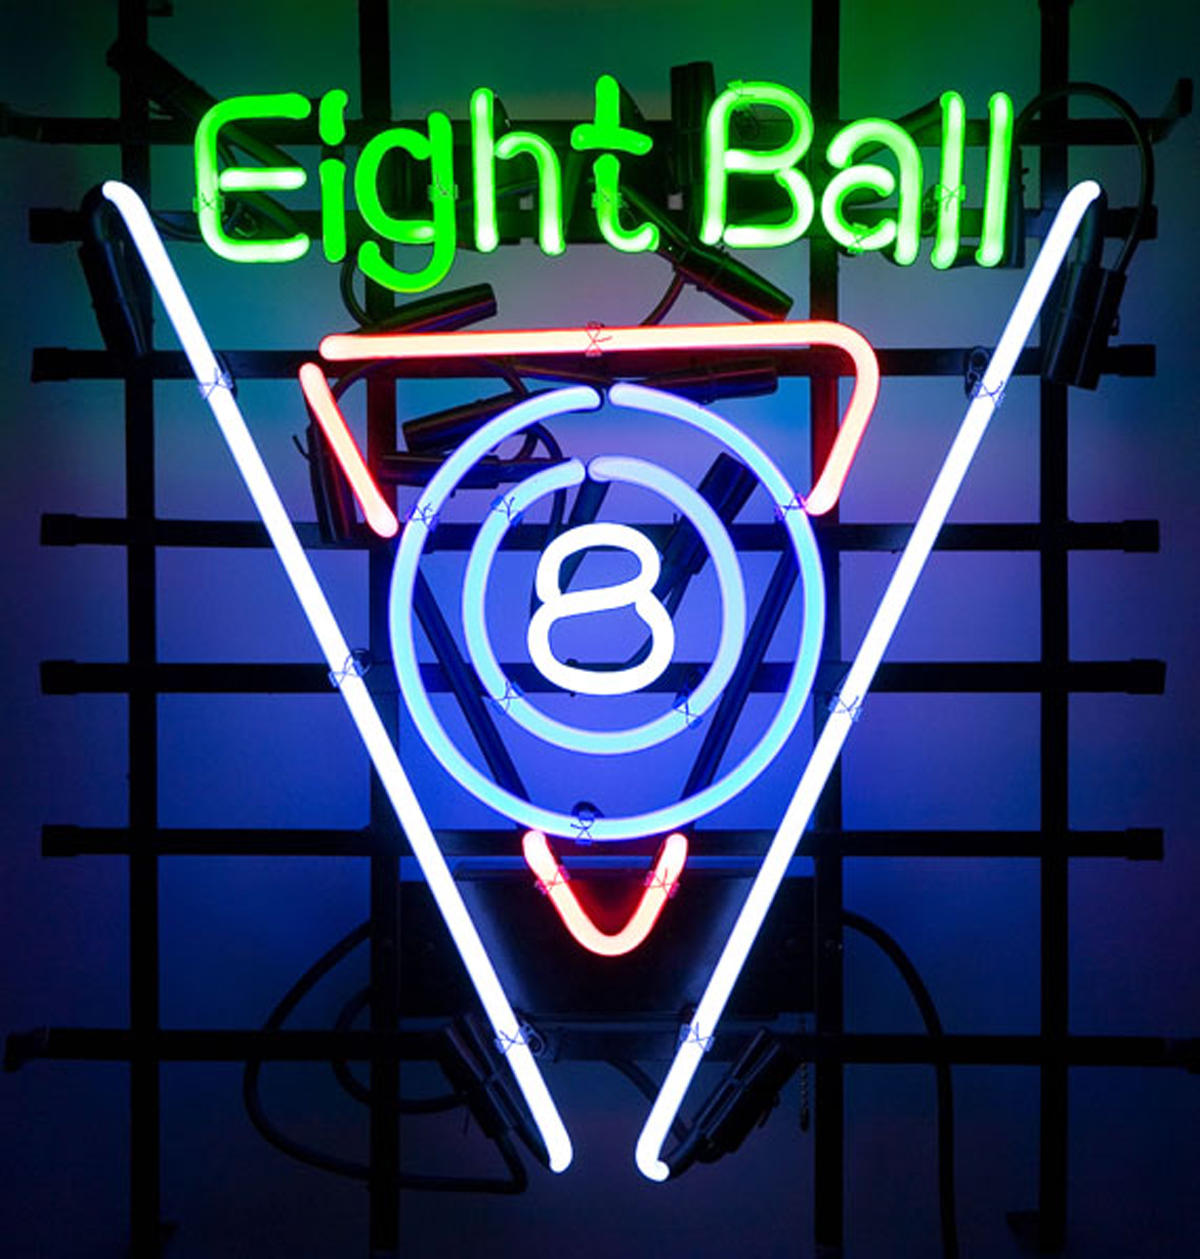 "On The Edge Marketing Neon Sign (Eight Ball)(19.5""x 21.5""x 6.5"")"